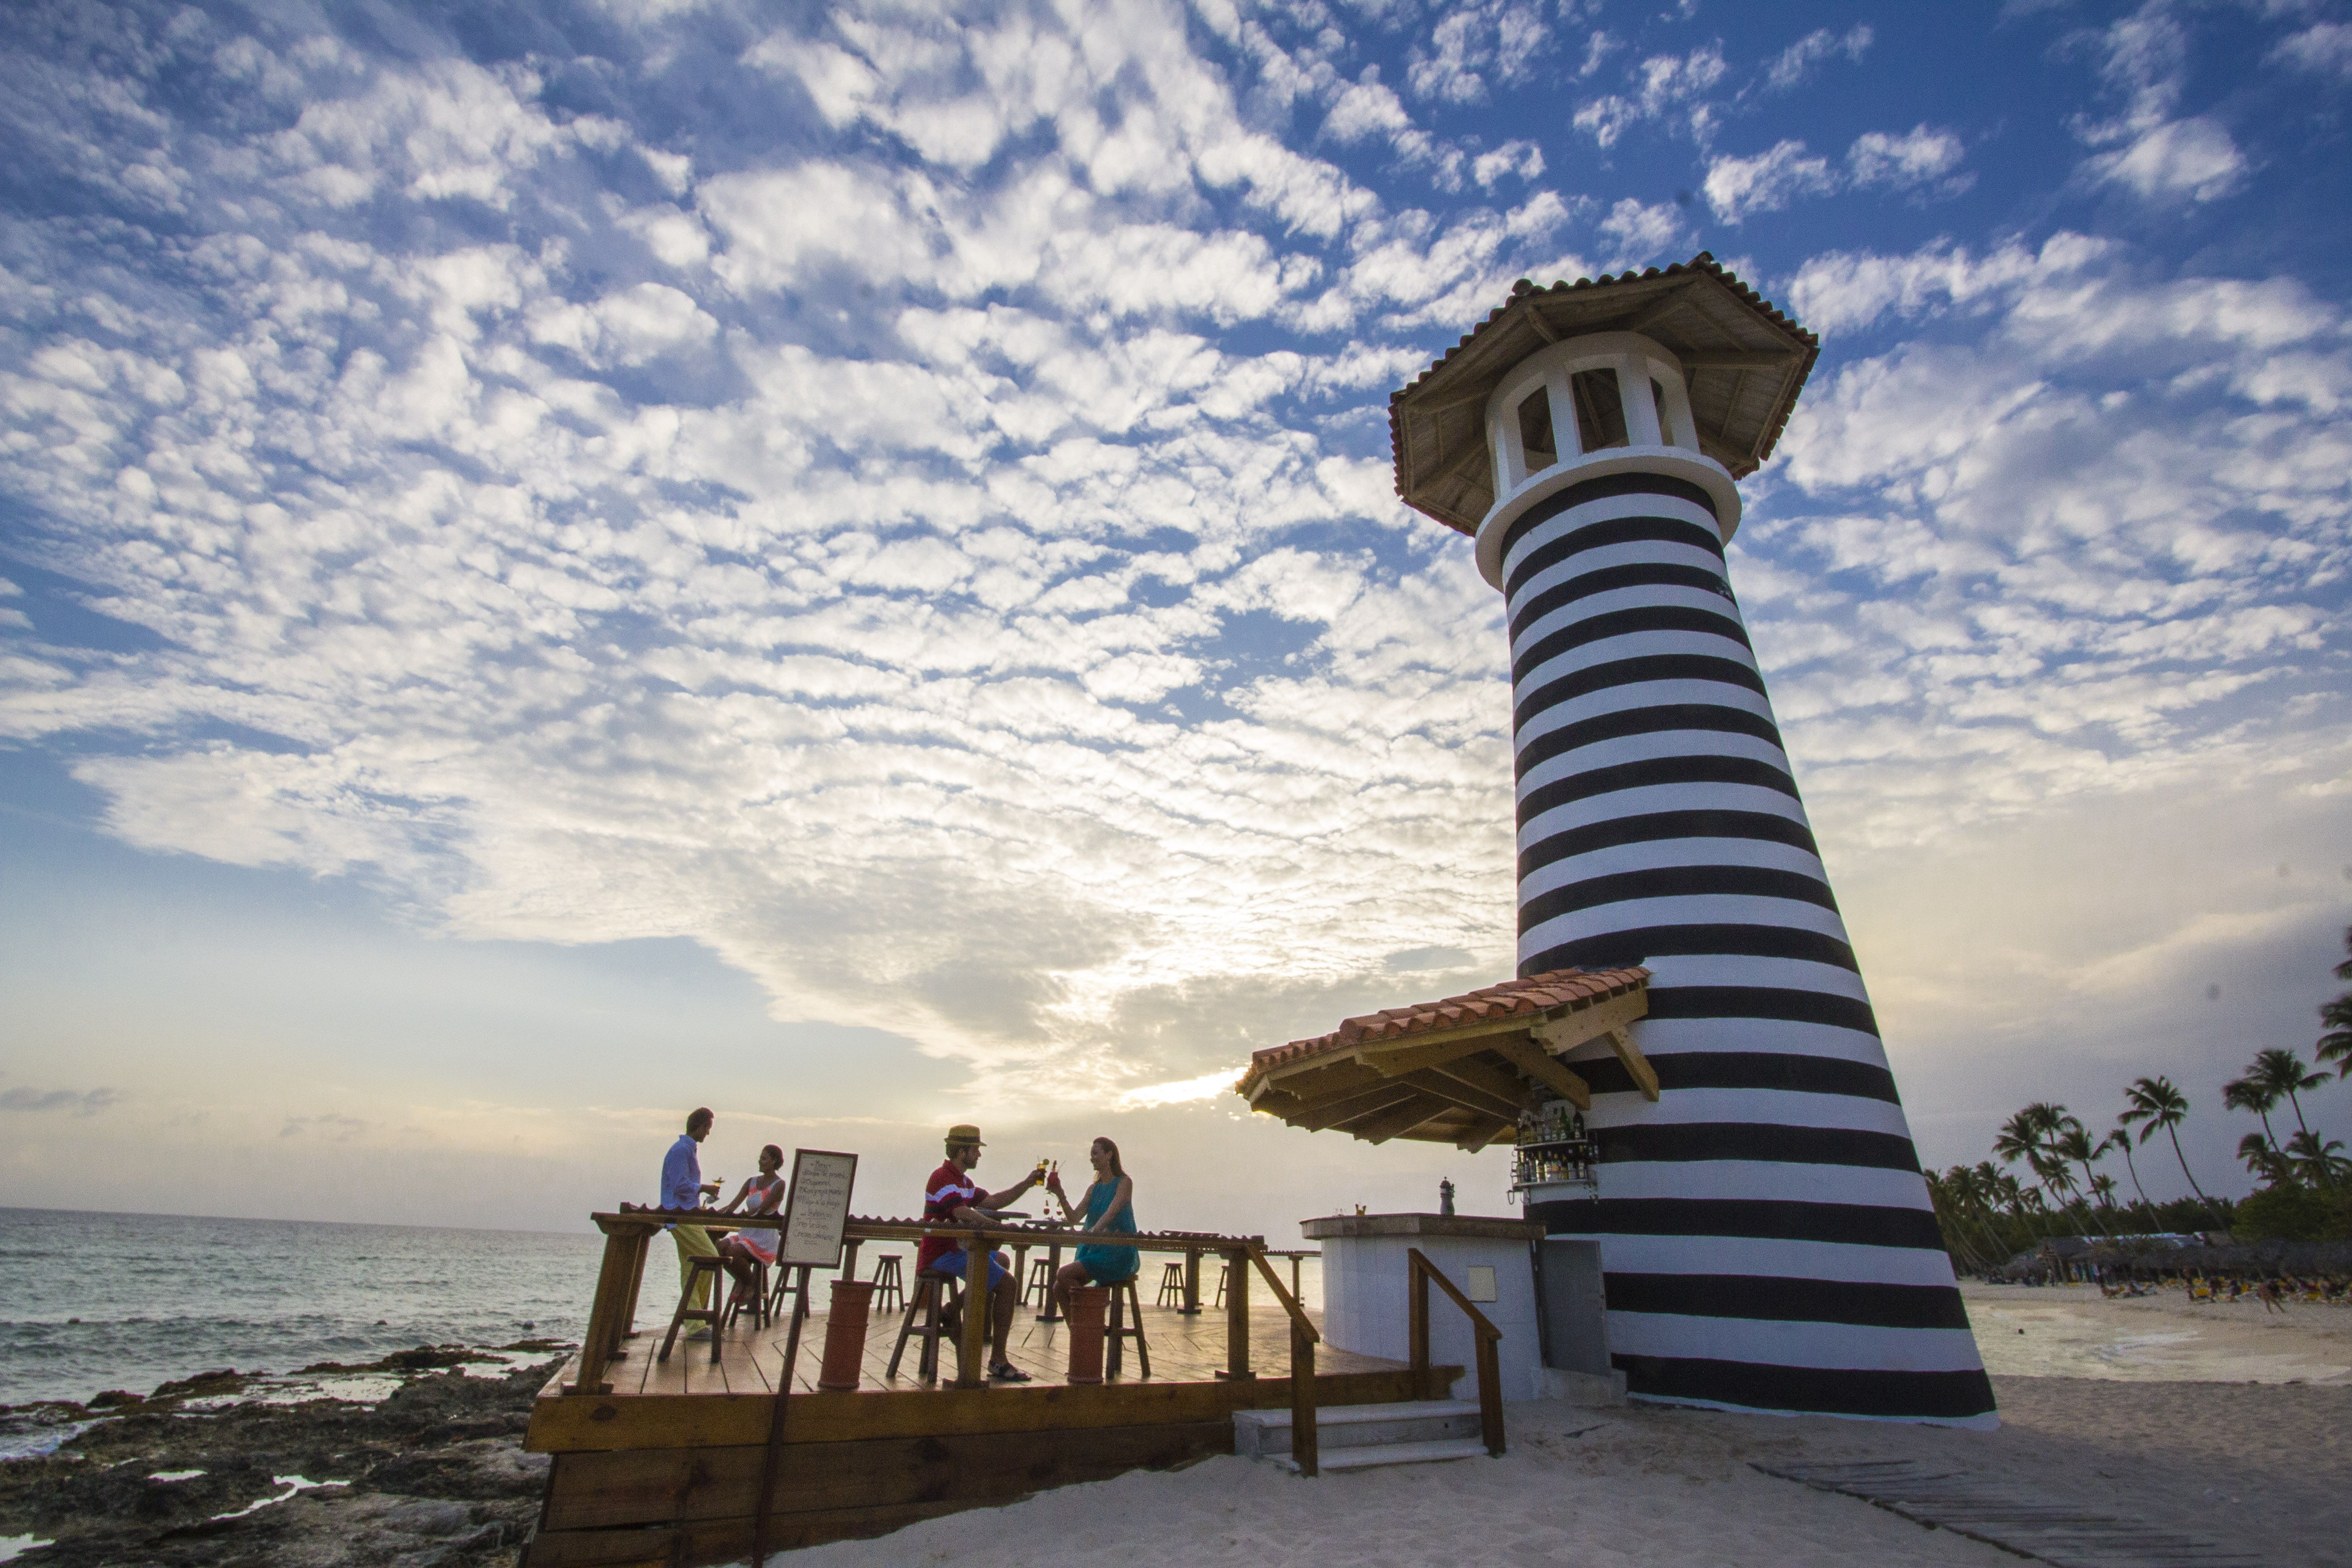 The Lighthouse At Playa Dominicus In La Romana Dominican Republic